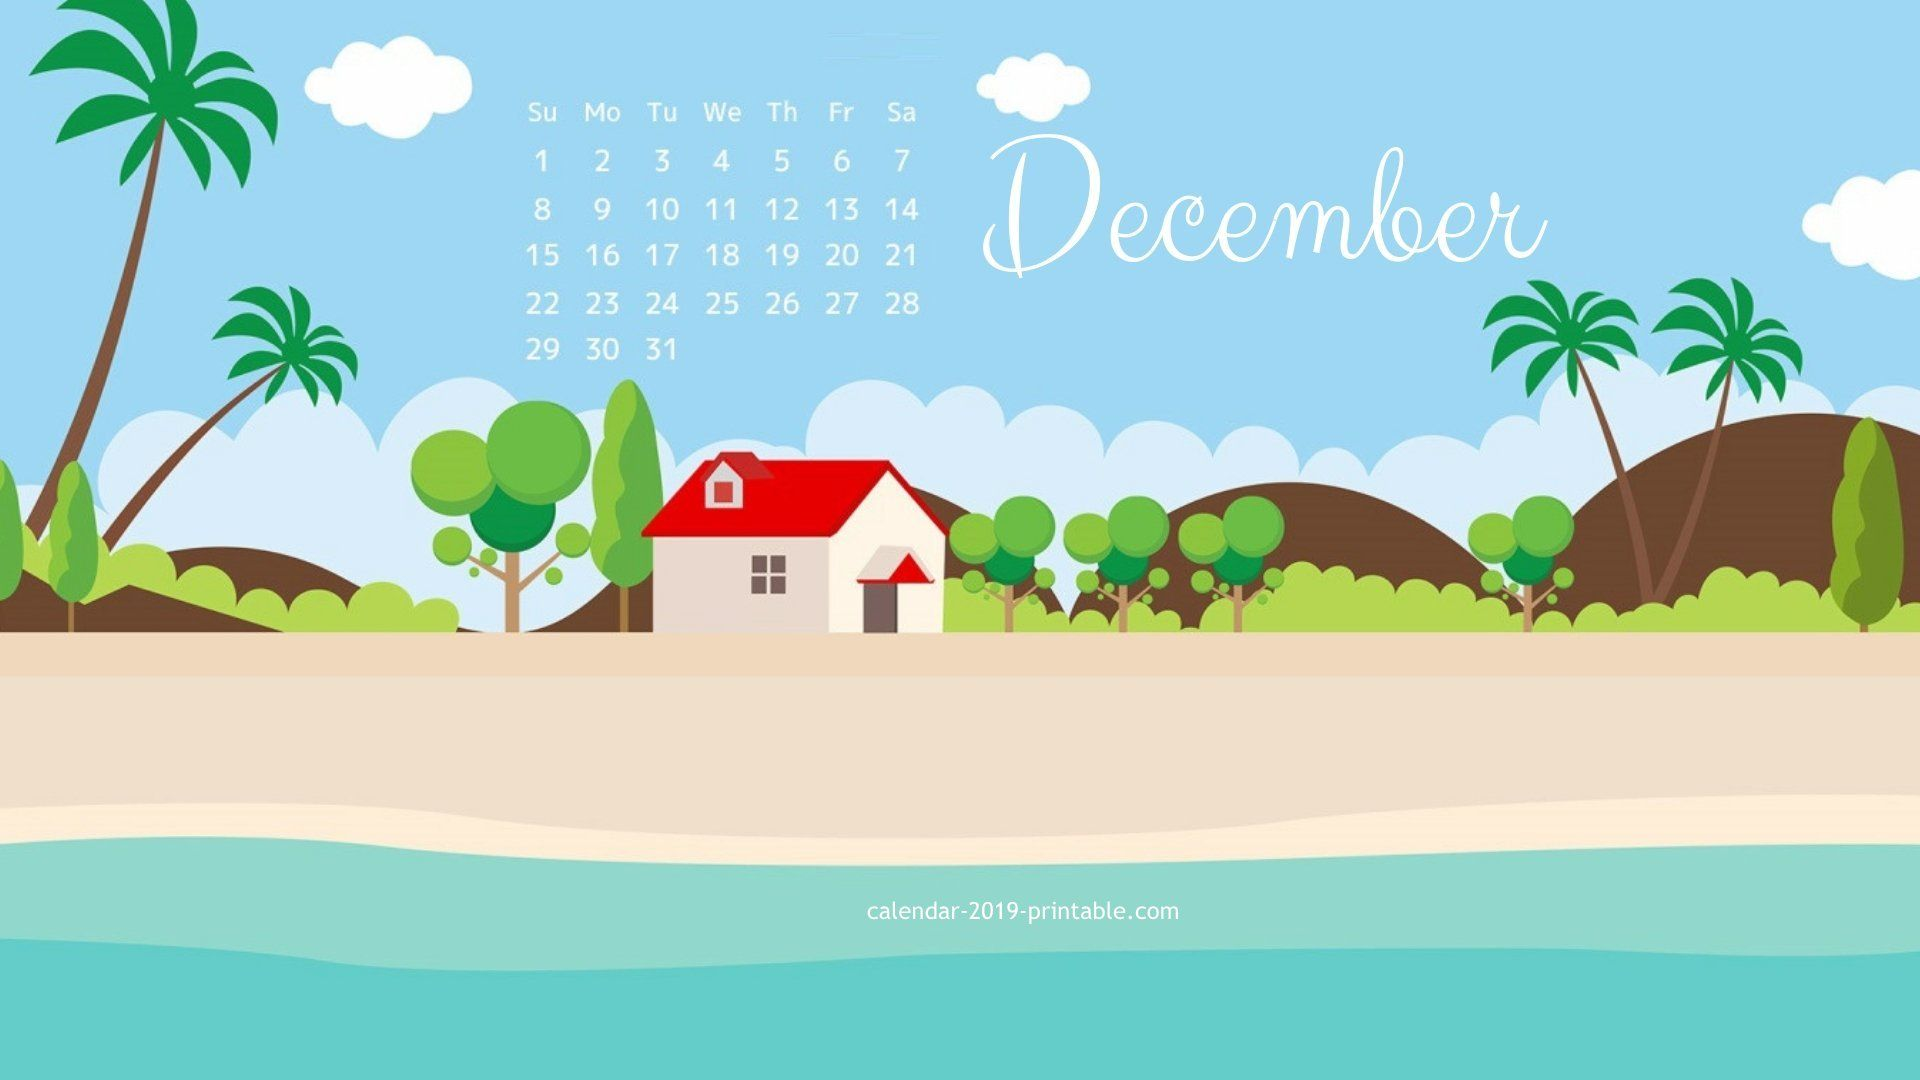 Desktop Calendar Wallpaper December 2019 december 2019 hd calendar wallpaper | 2019 Calendars | December